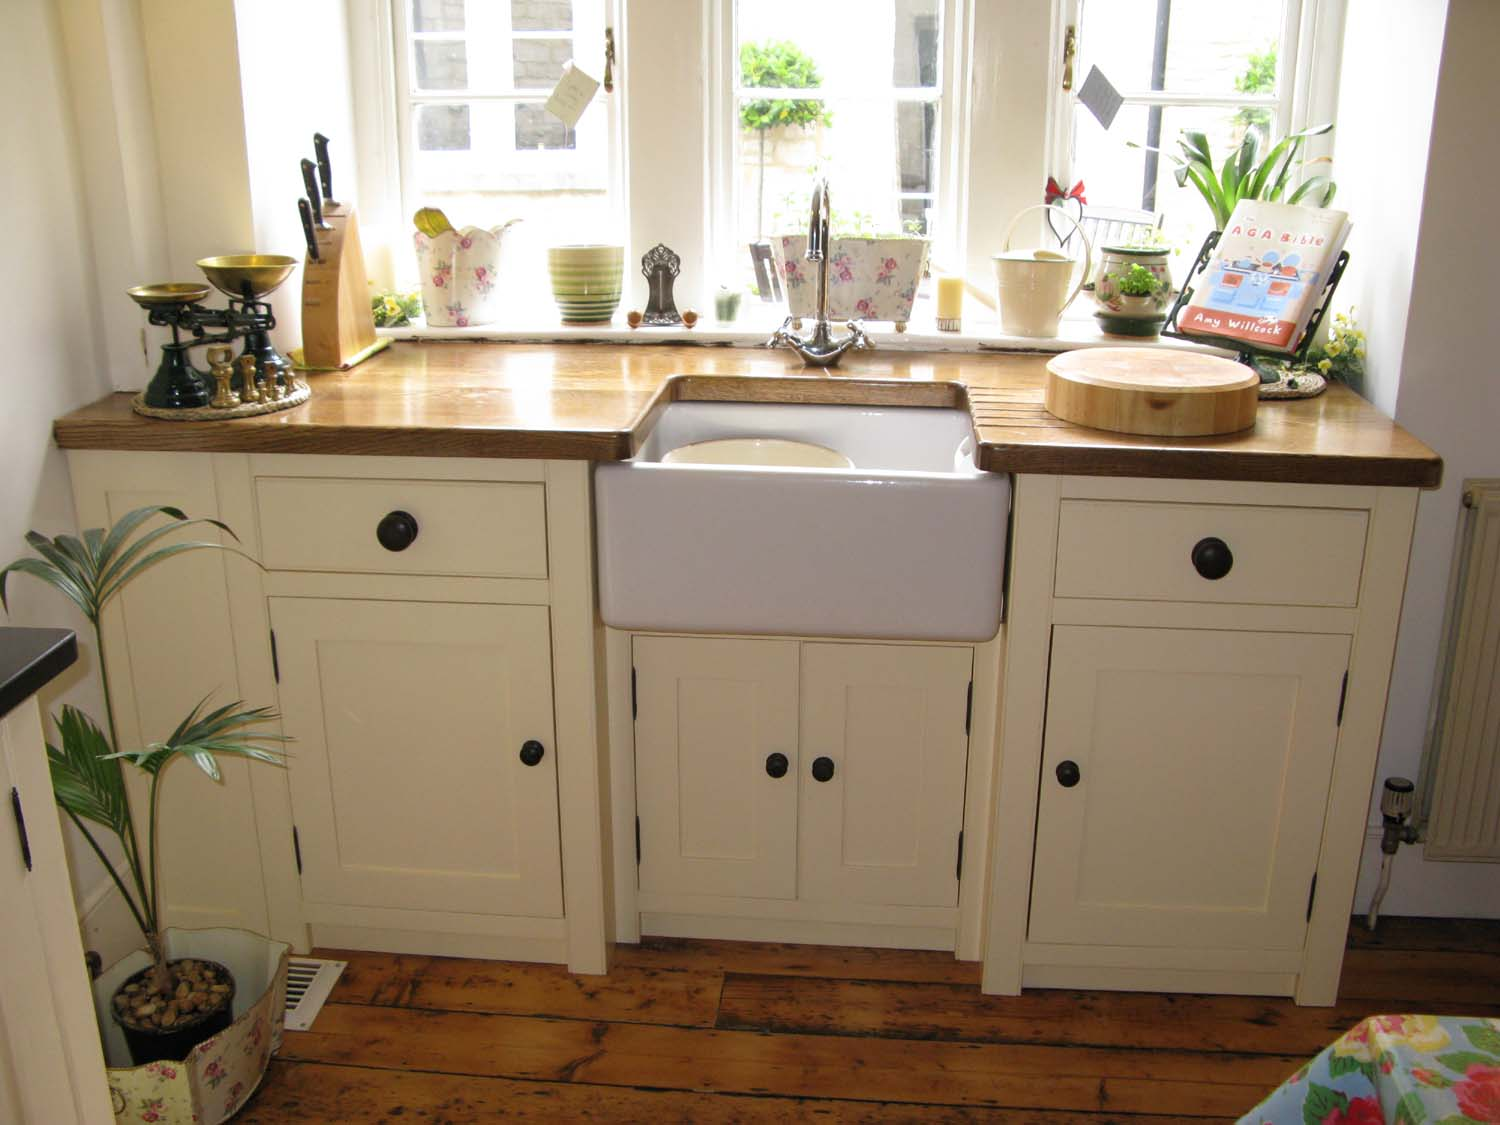 Free standing kitchen units best home decoration world class for Vintage kitchen units uk